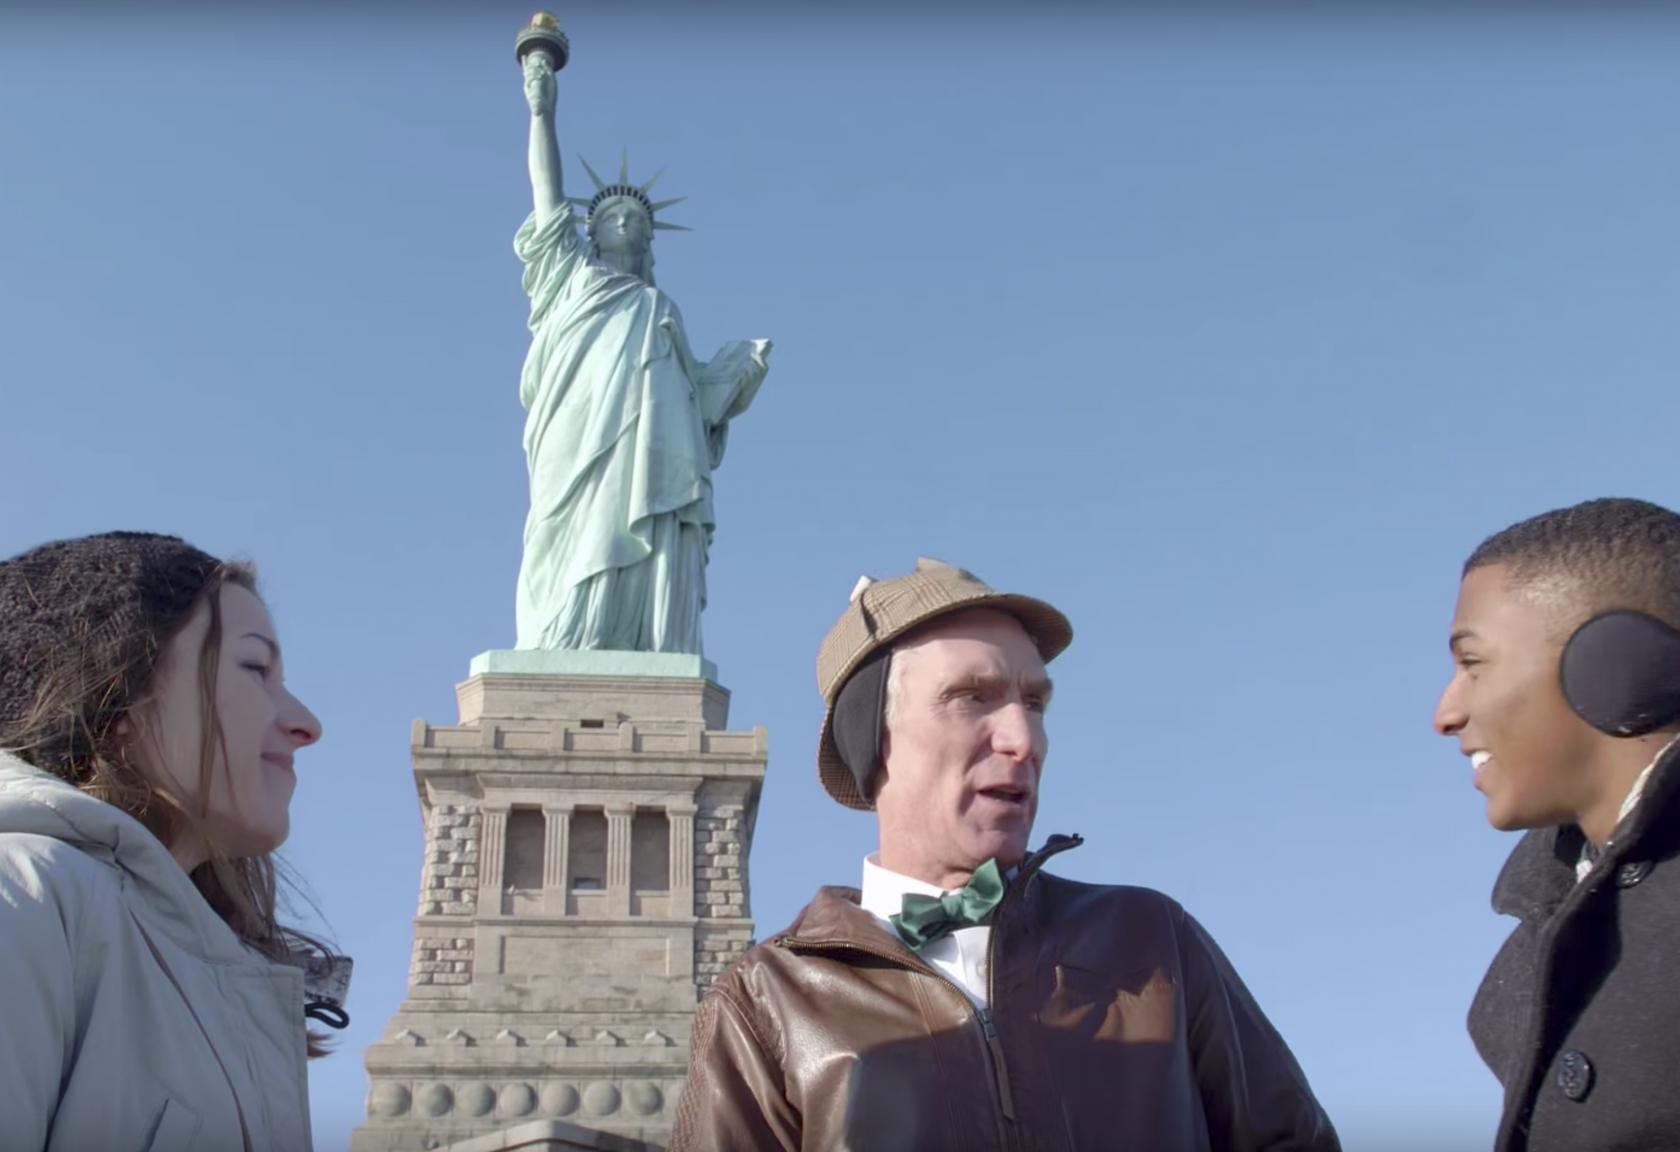 Bill Nye with two other people standing in front of the Statue of Liberty